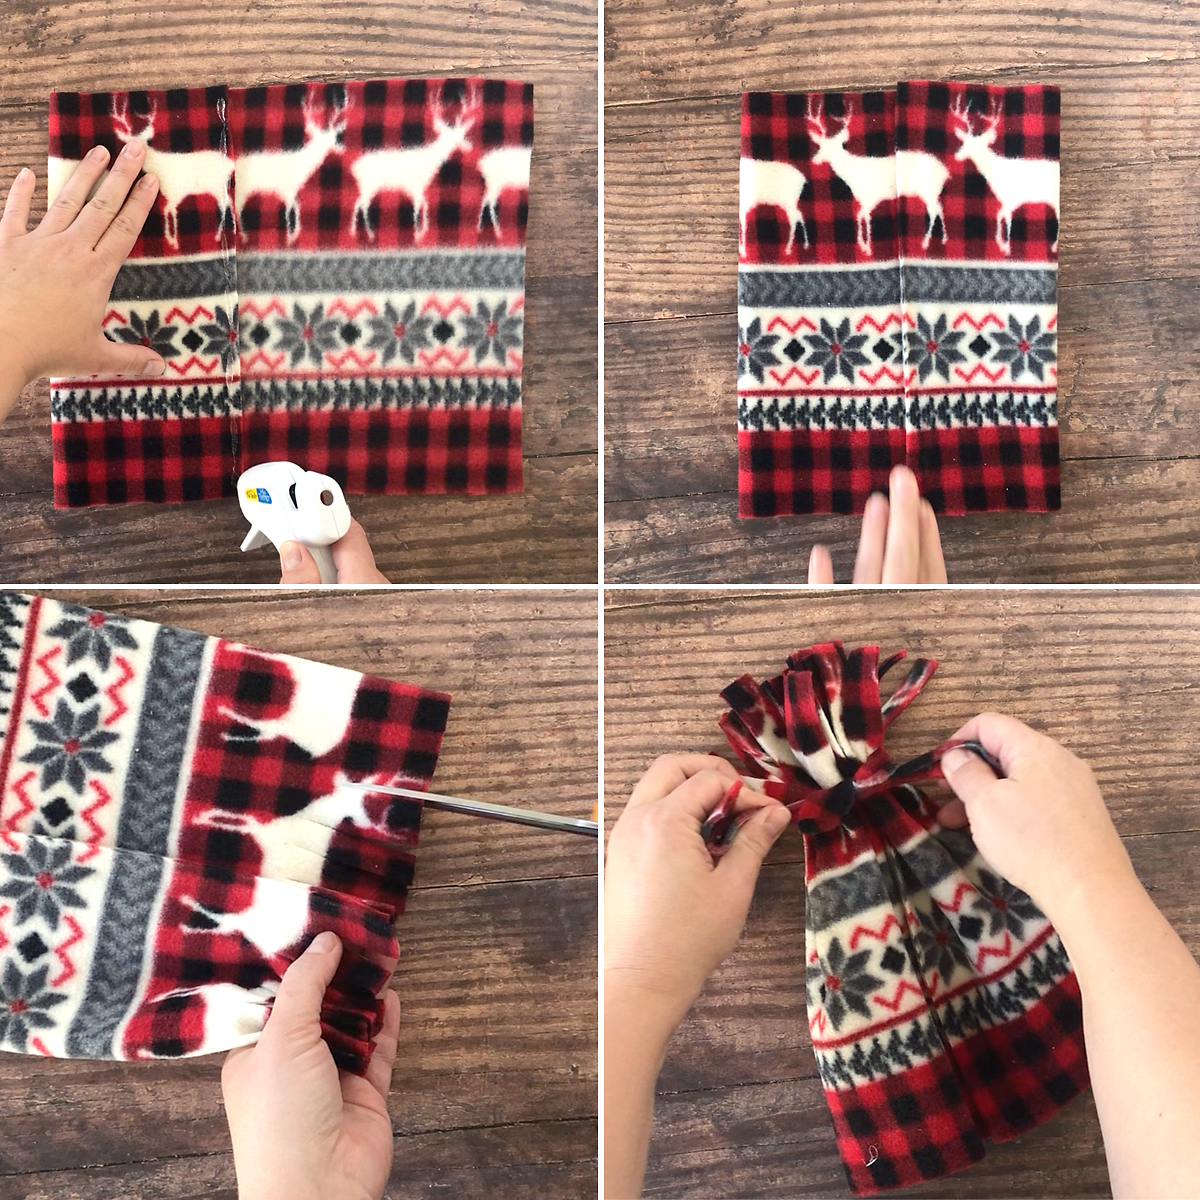 How to make a hat for a toilet paper snowman Christmas craft.